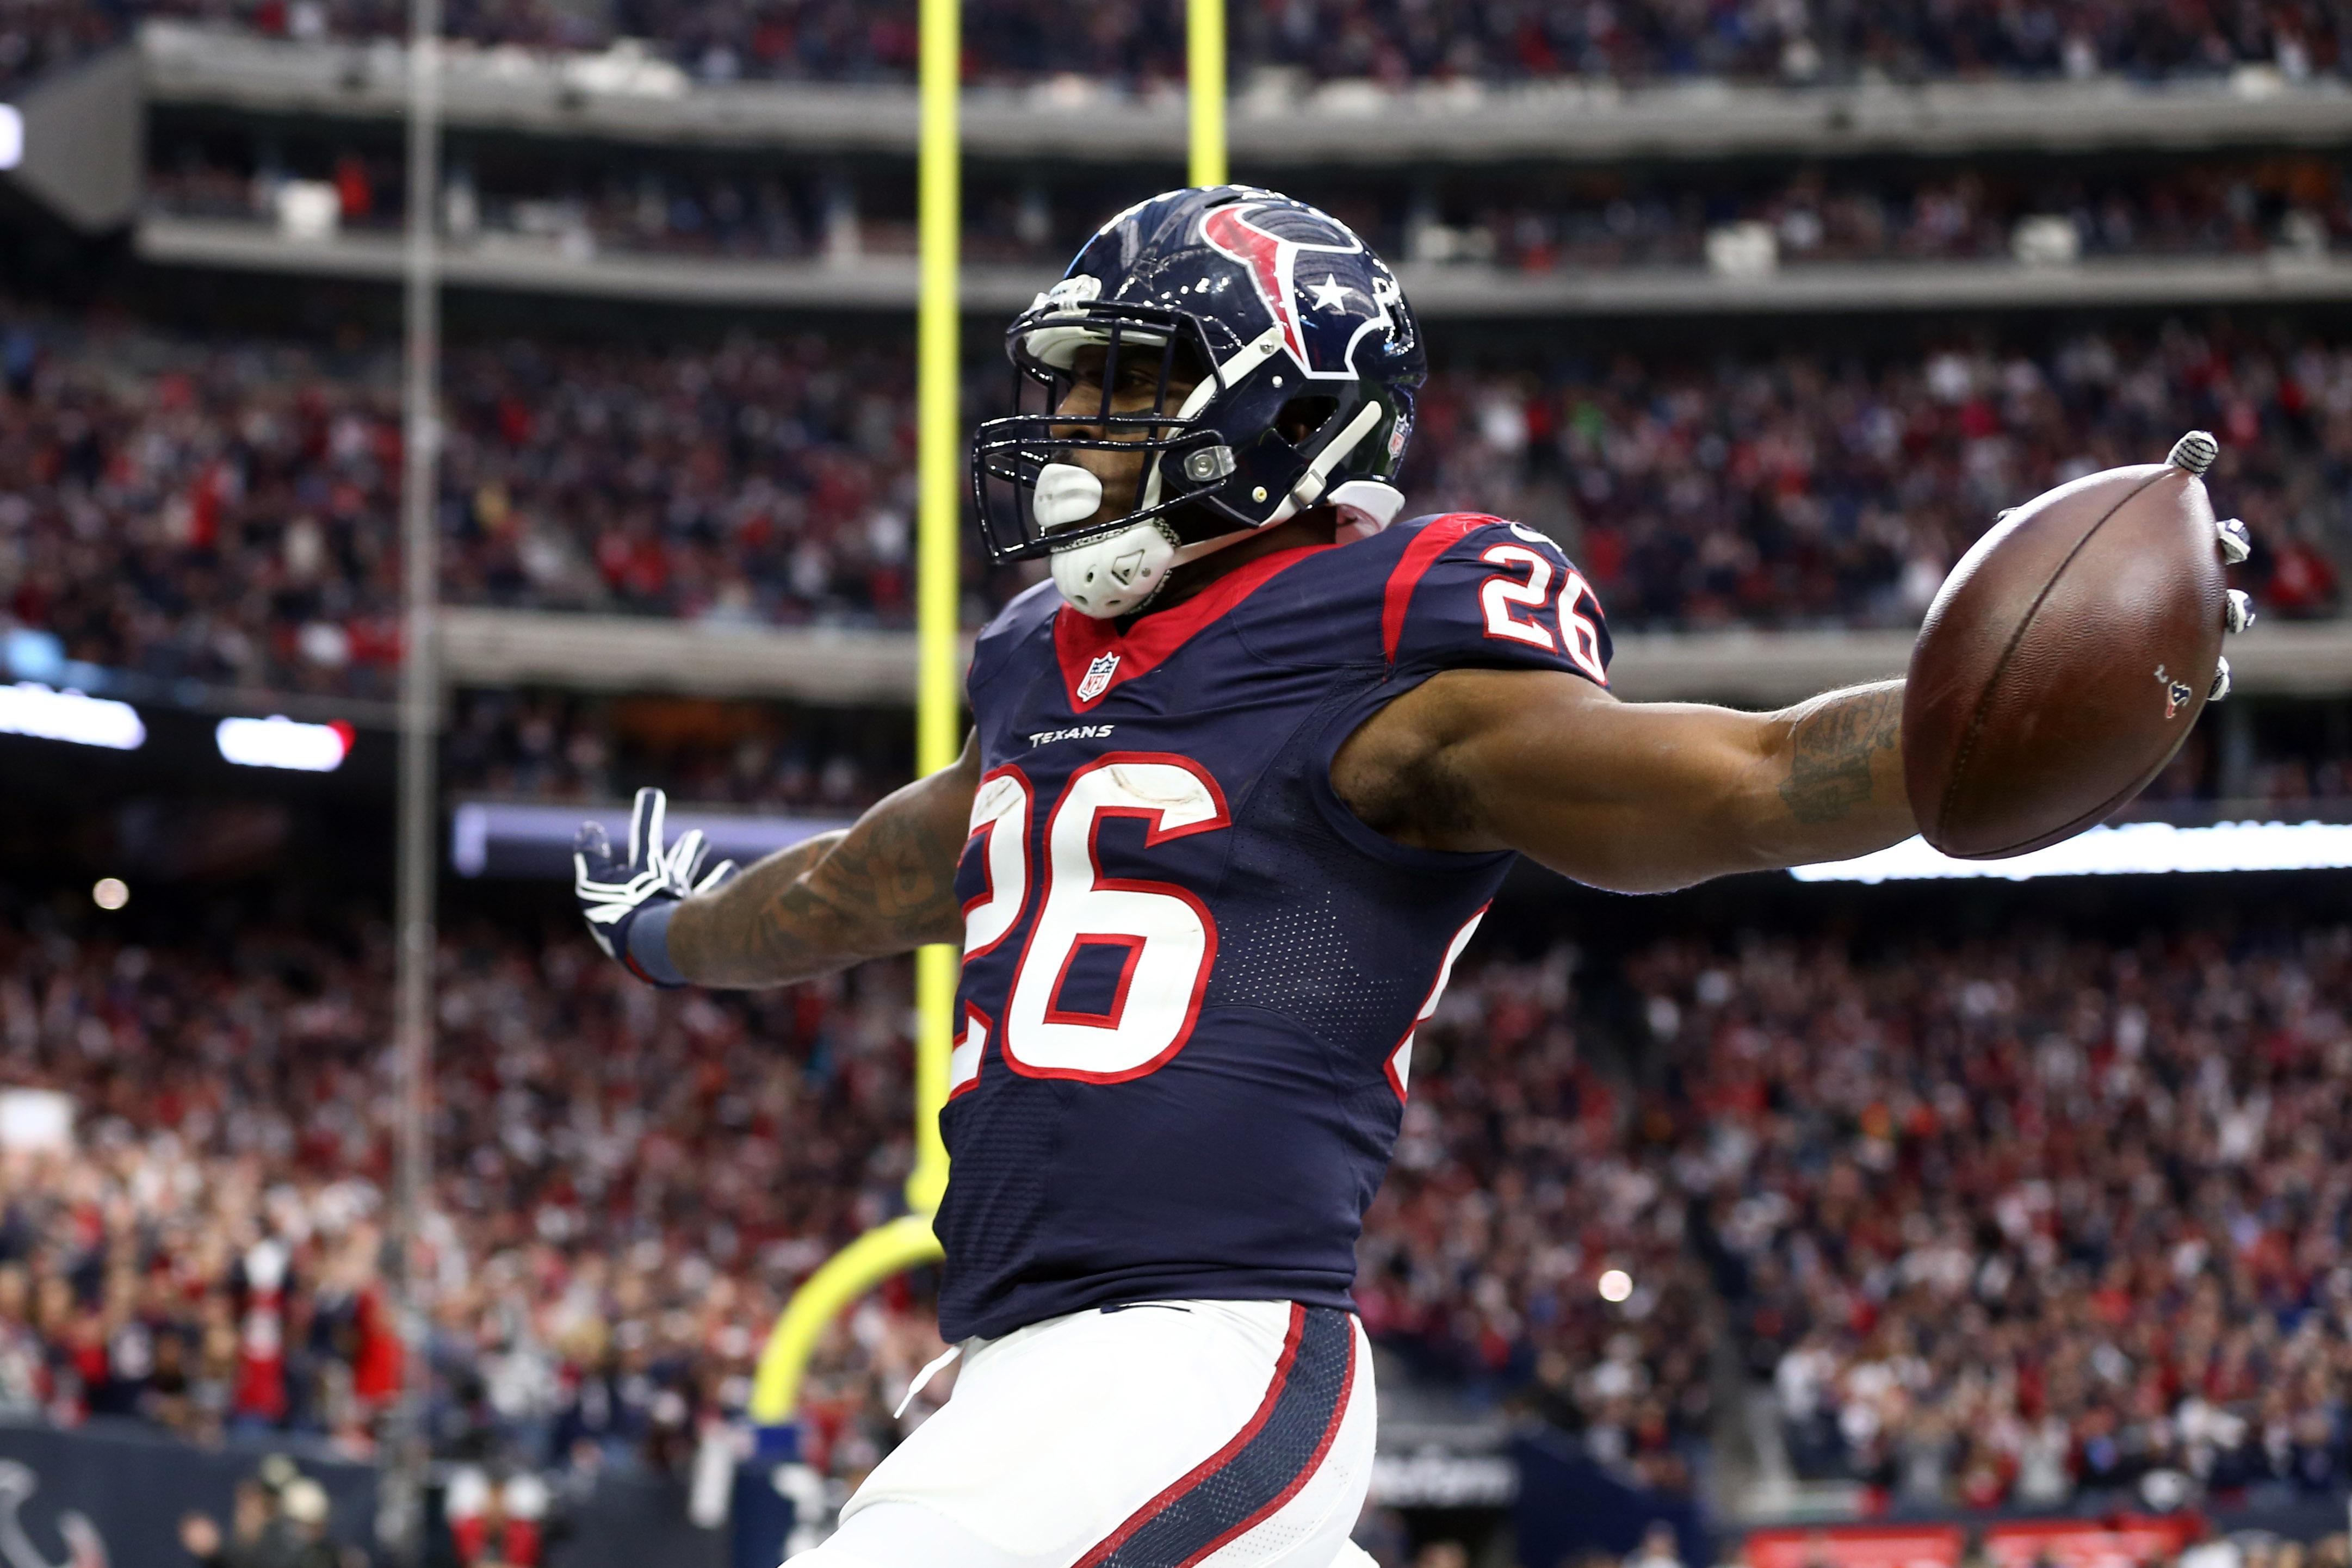 9794473-nfl-afc-wild-card-oakland-raiders-at-houston-texans